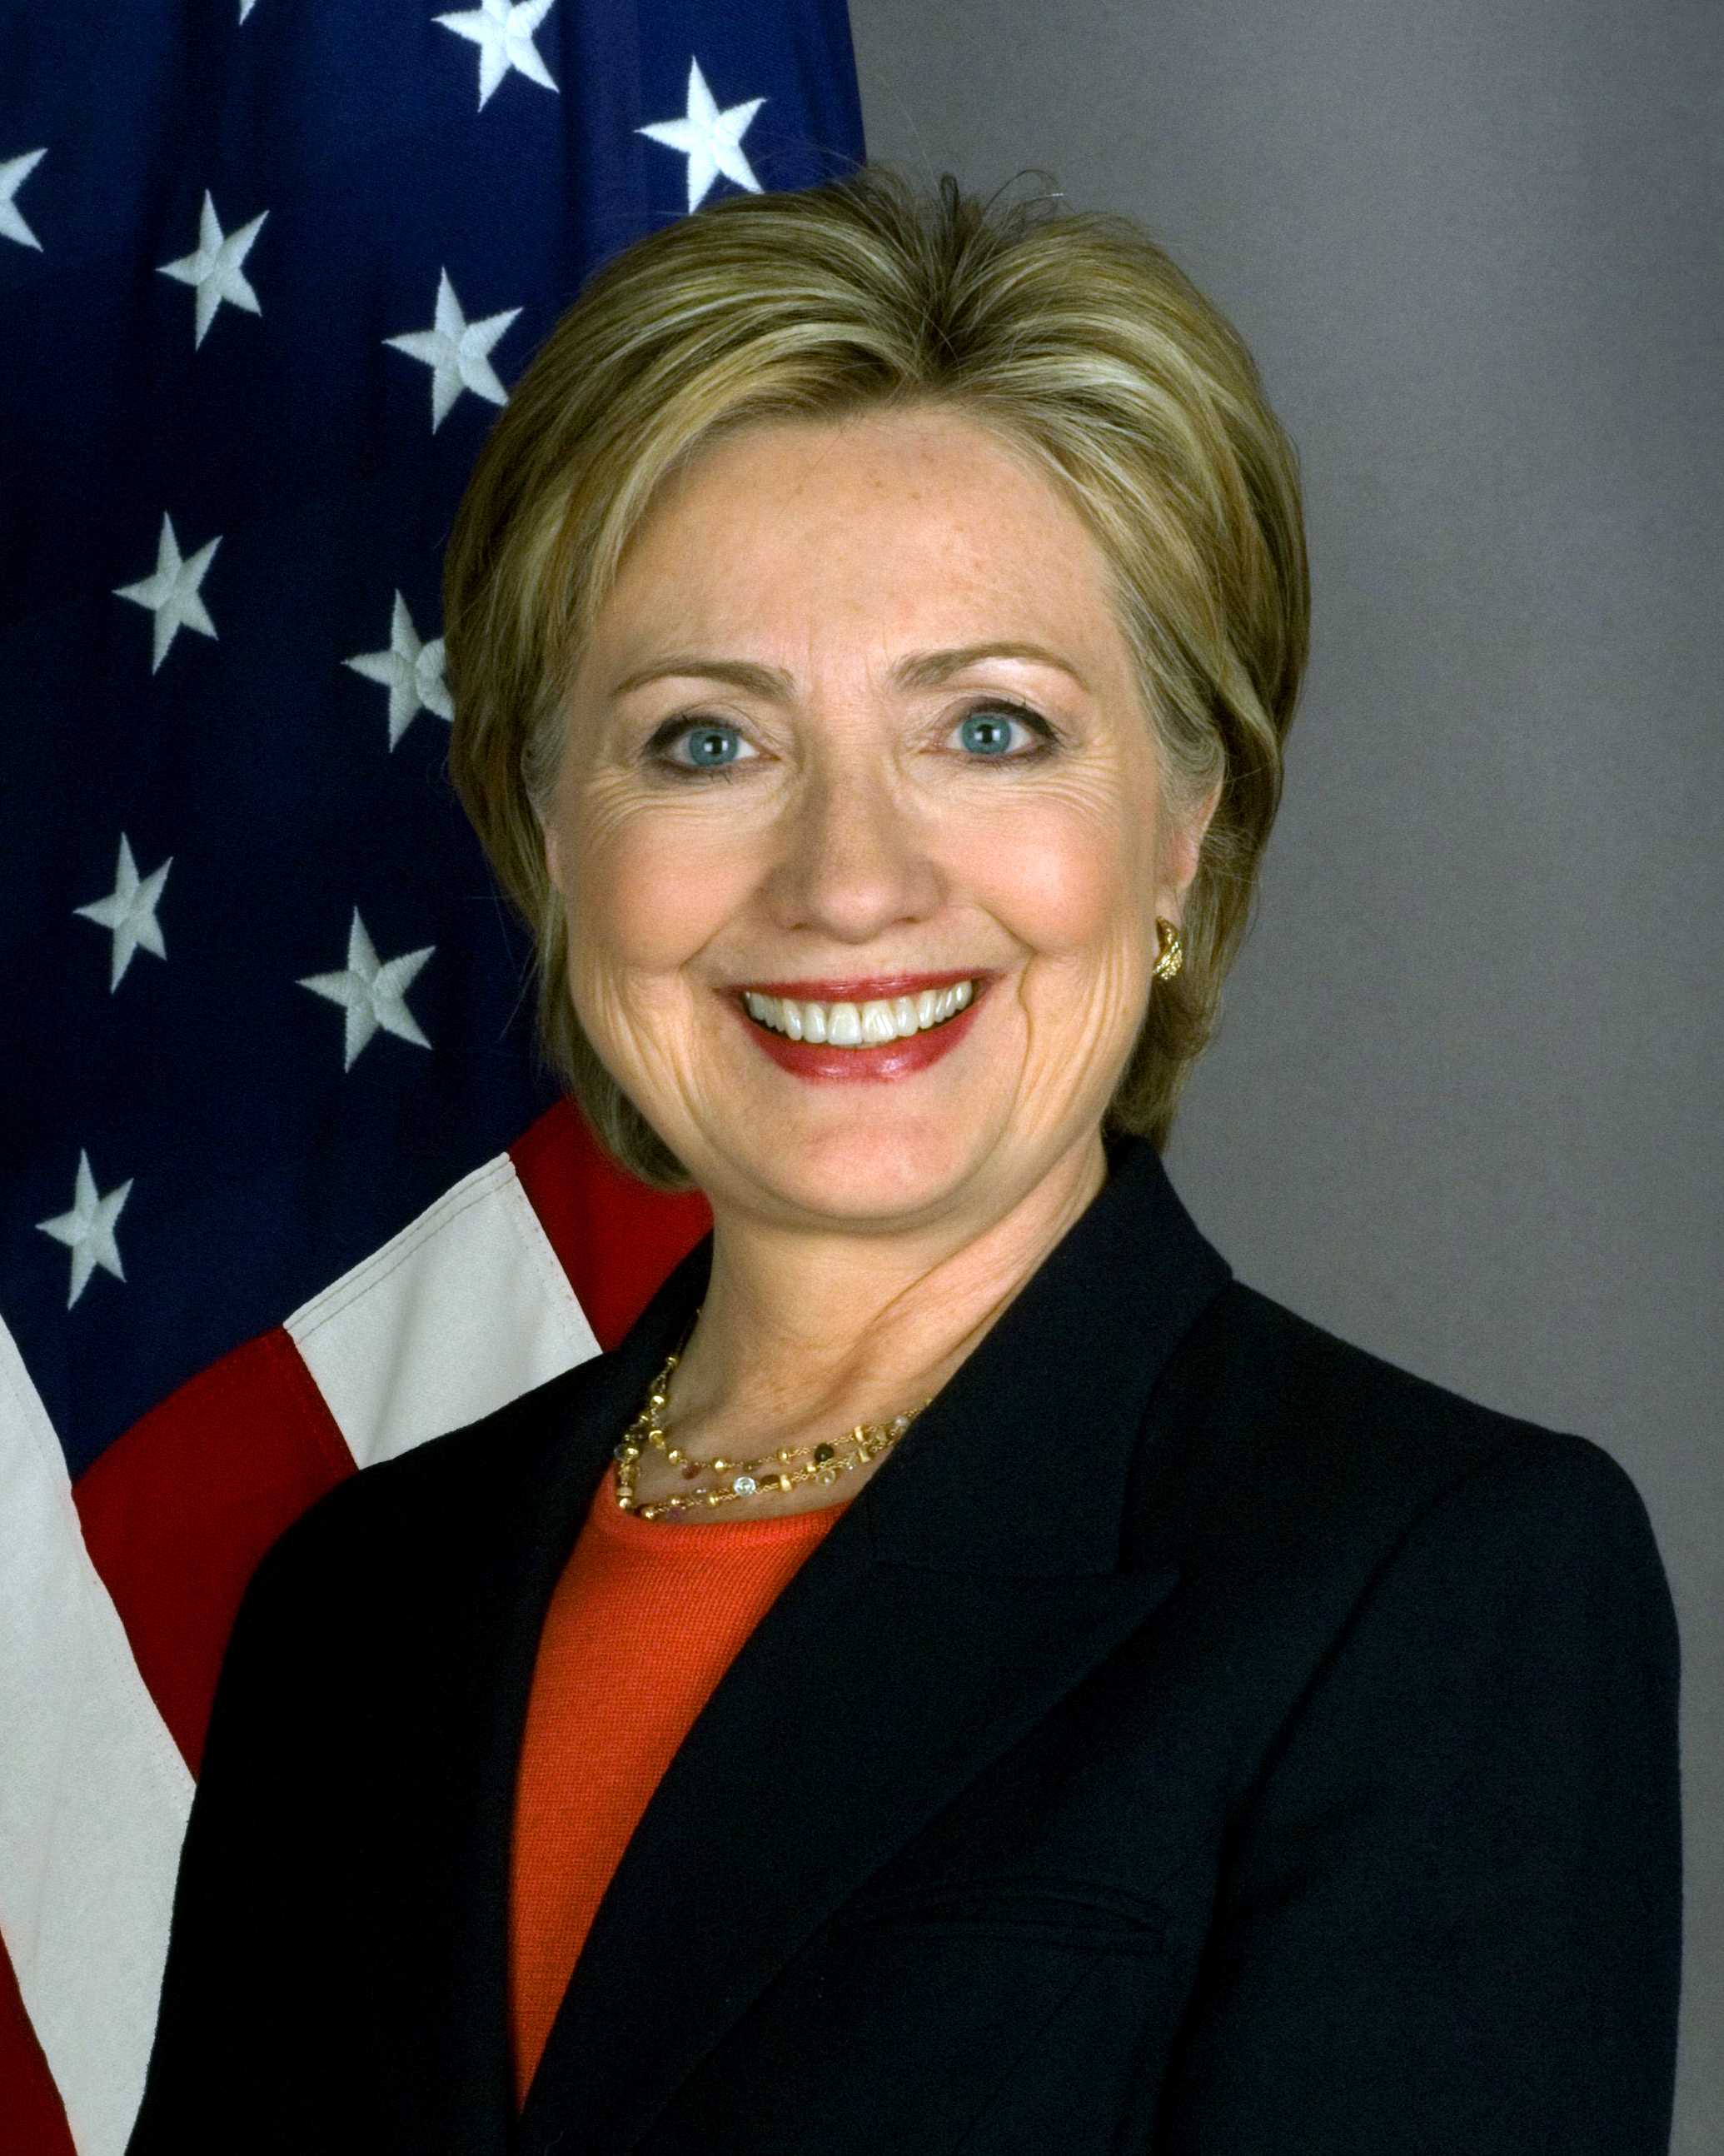 Does any one know any good reliable NEUTRAL web sites on Hilary's and Obama's health care plan?